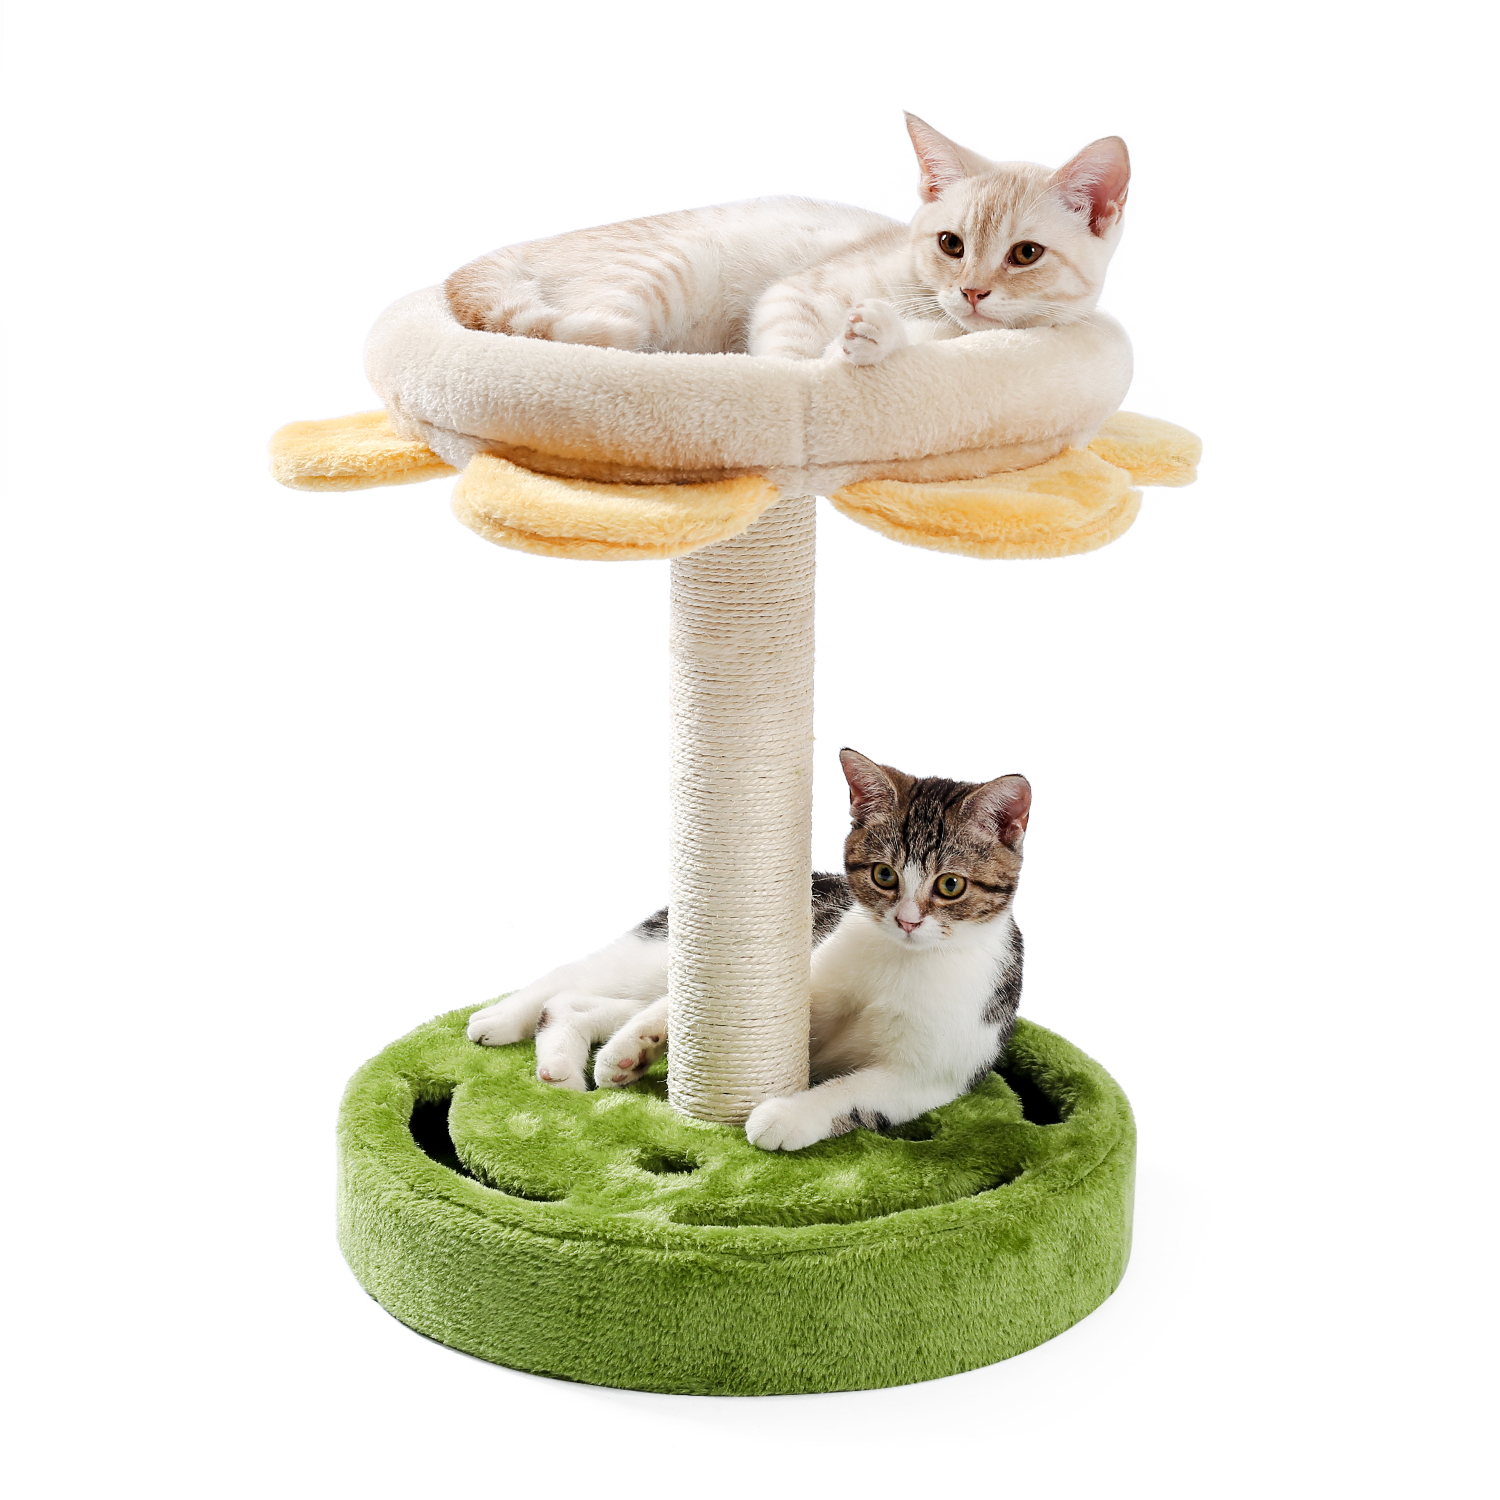 Cat Tree 5 Levels Modern Cat Tower Cat Sky Castle with 2 Cozy Condos, Luxury Perch and Interactive Spring Ball